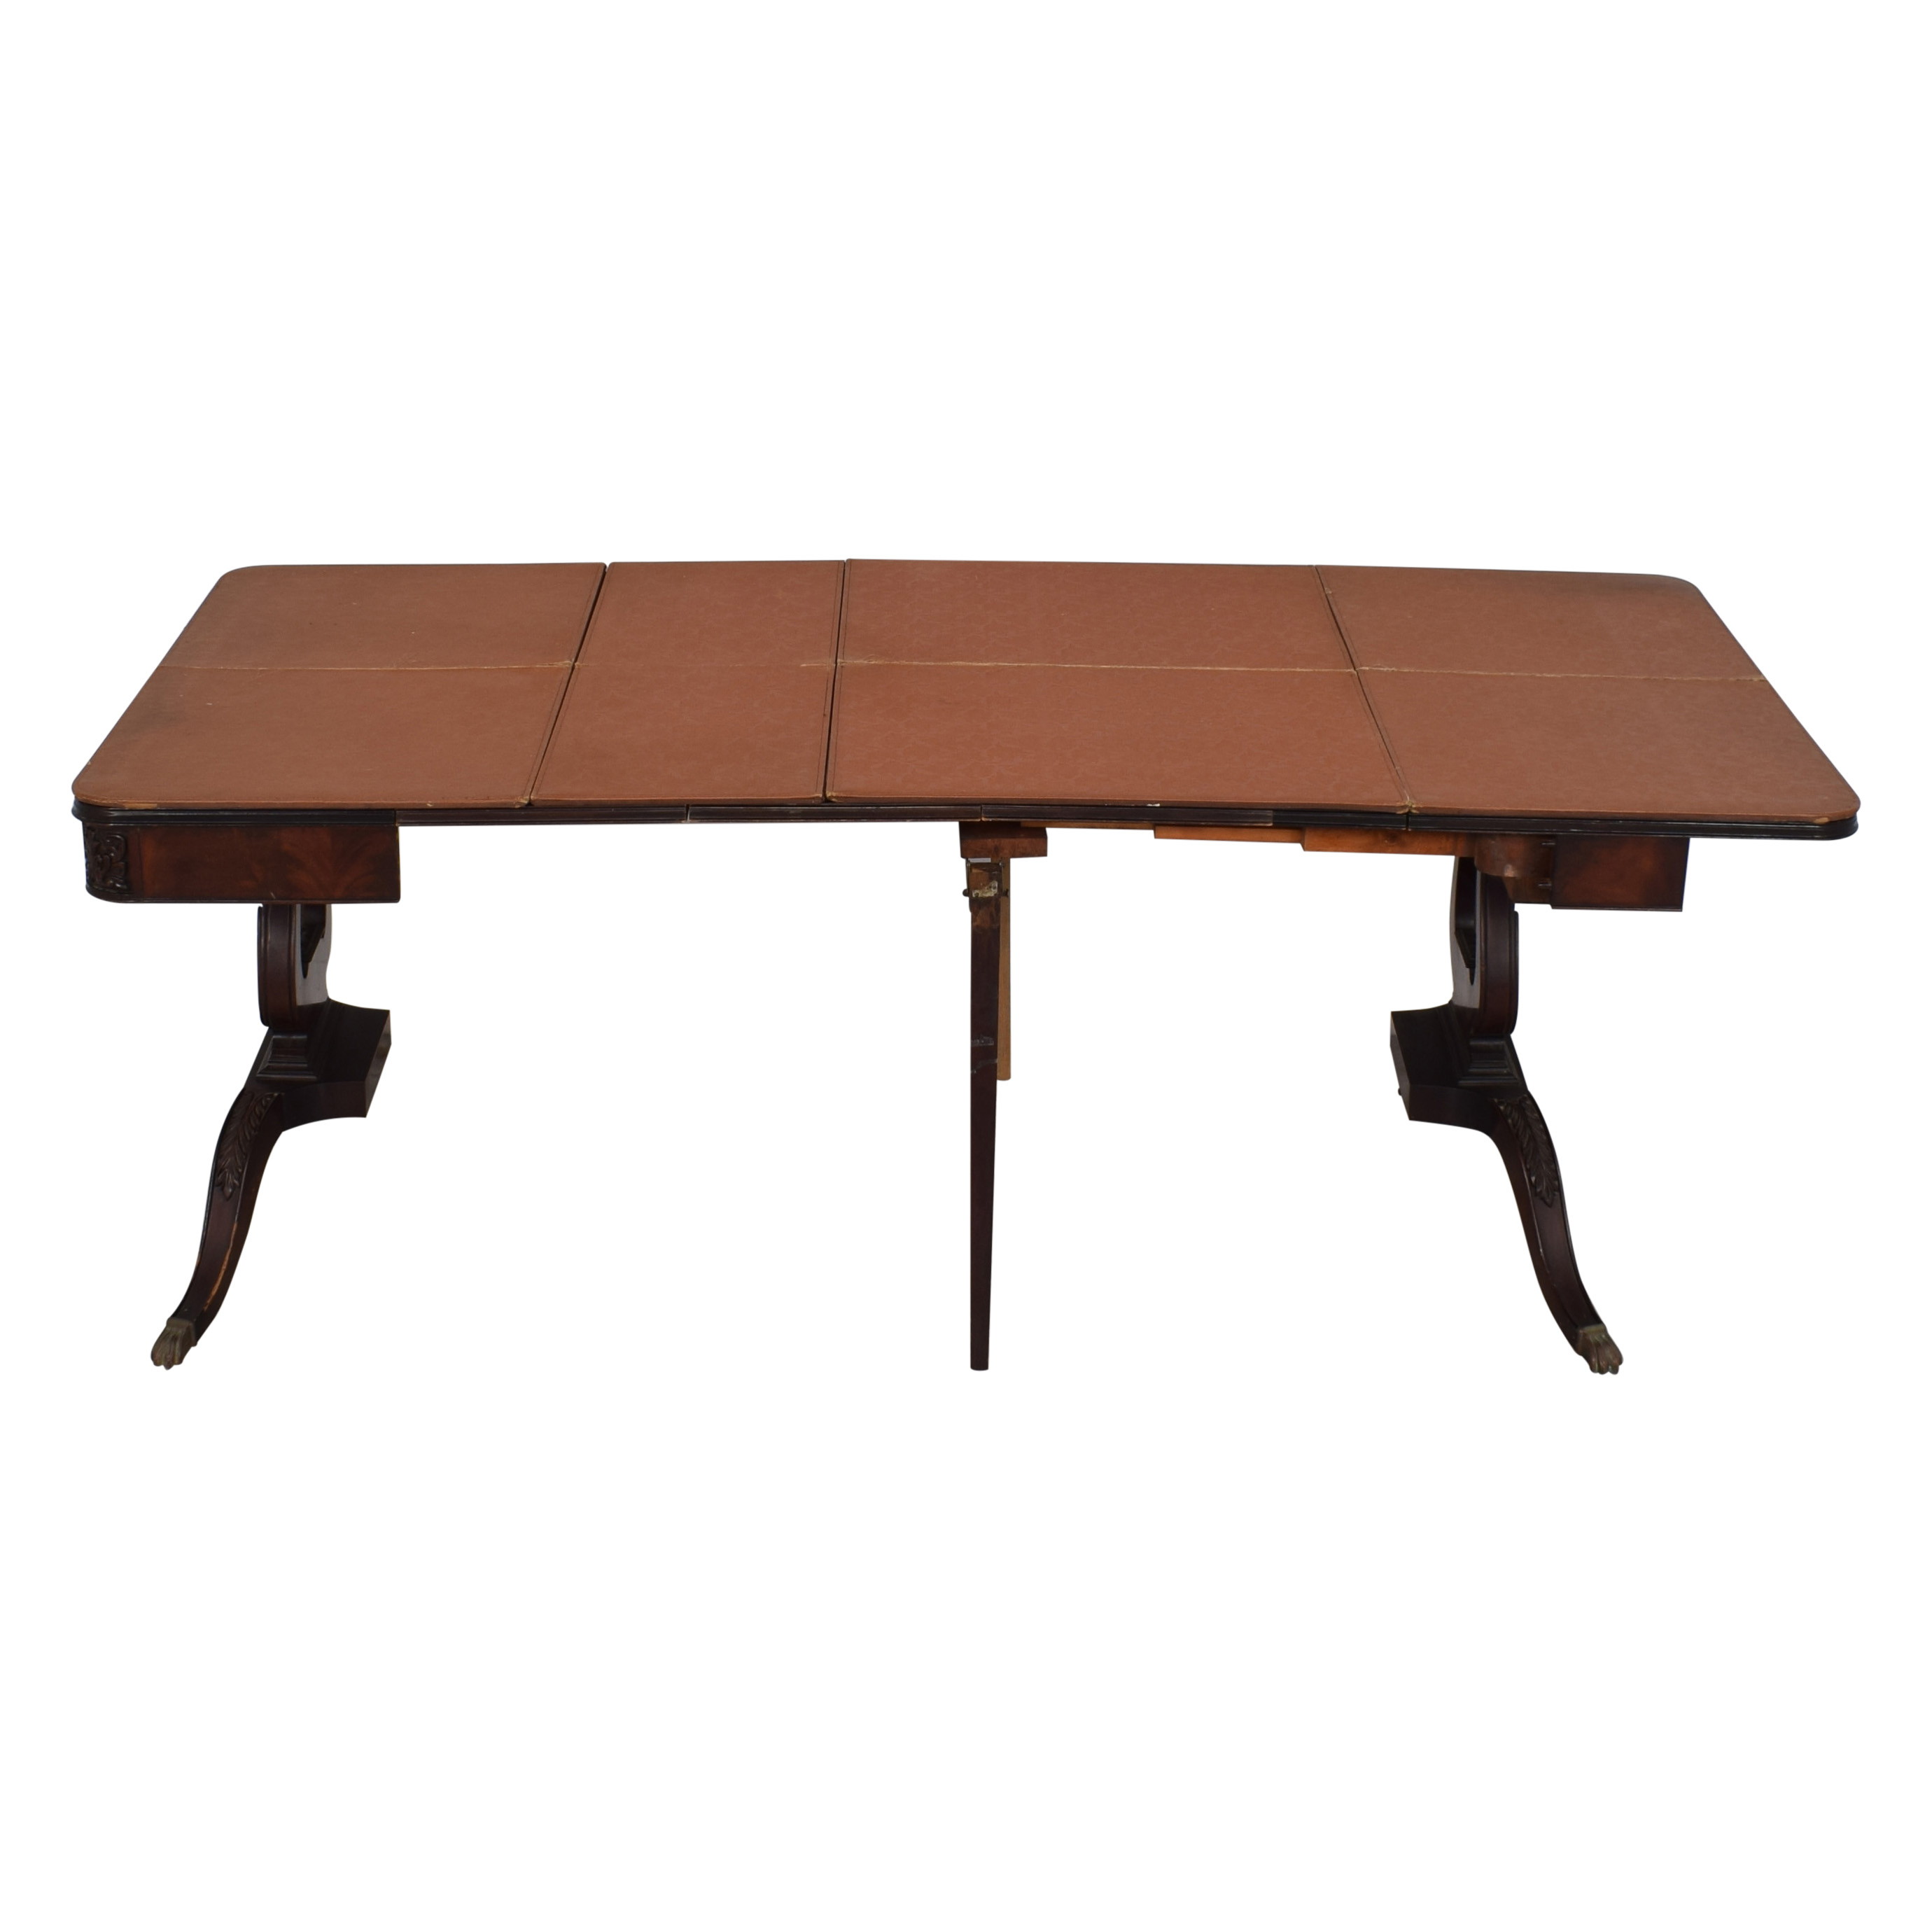 Watertown Table Company Slide Table brown